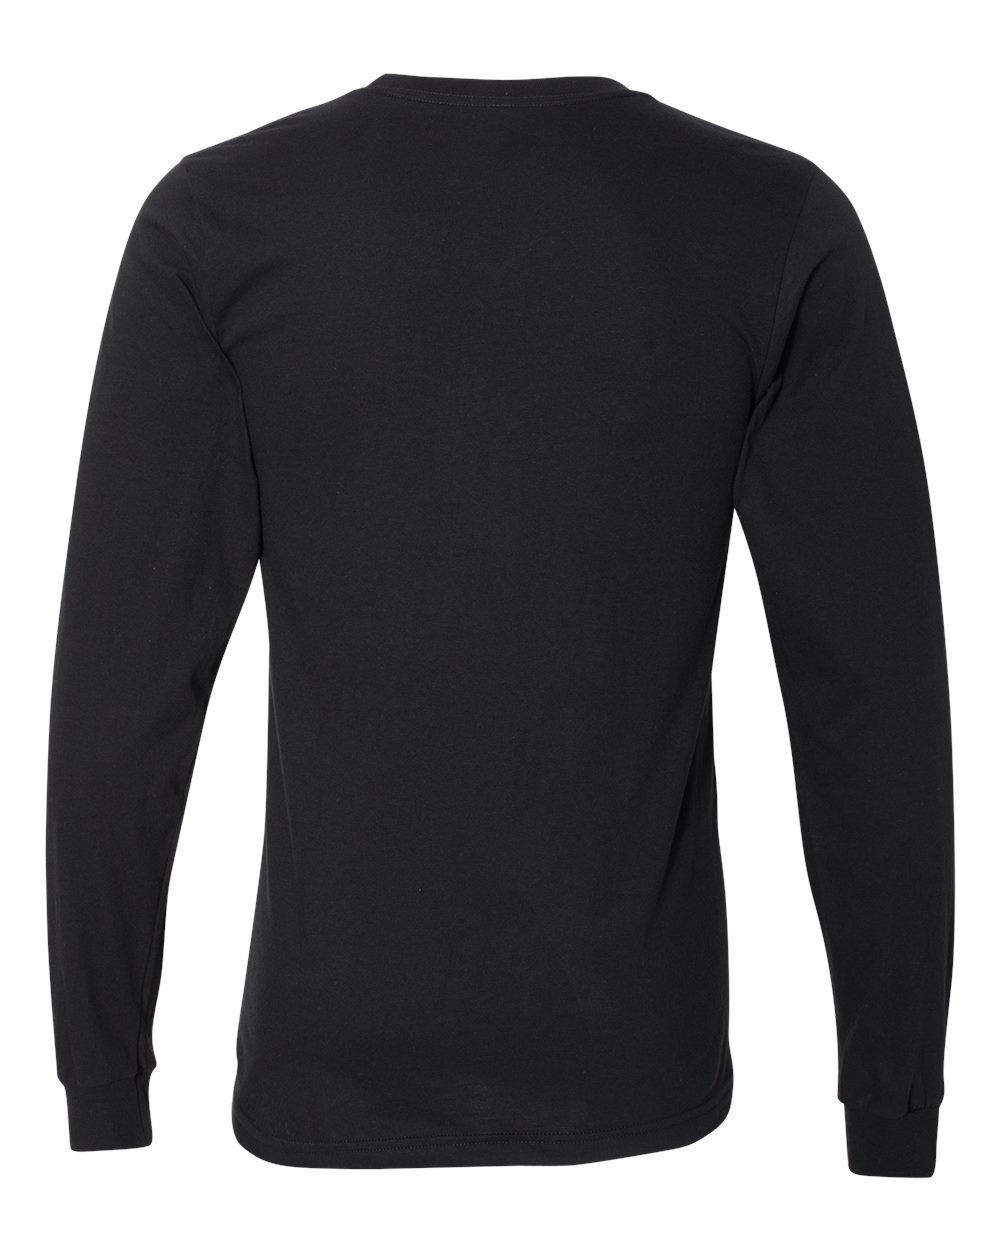 American Apparel Mens Fine Jersey Long Sleeve Tee T Shirt Blank 2007W up to 2XL